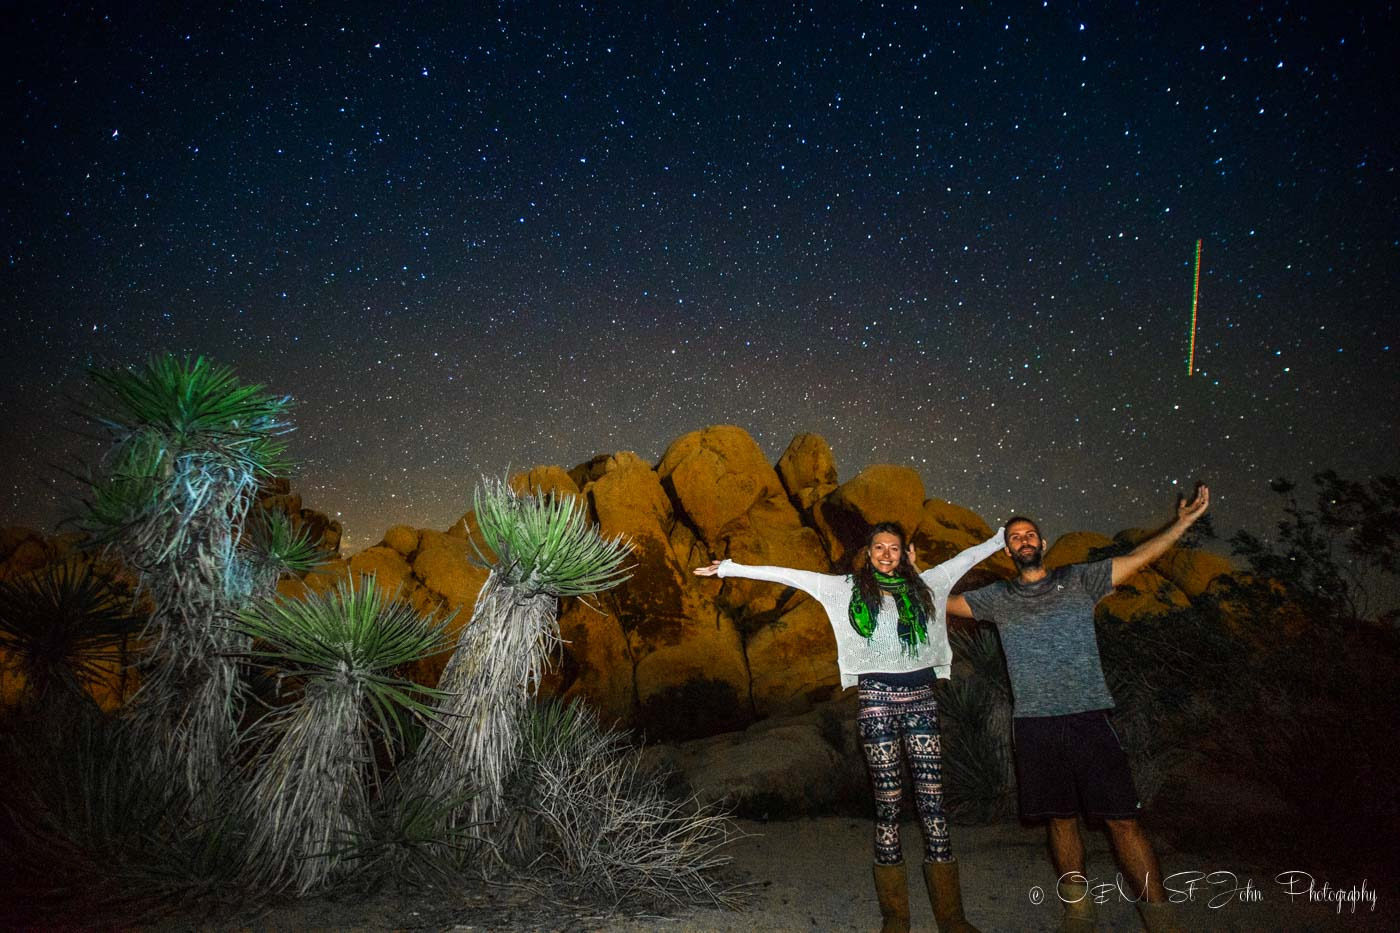 Under the stars in Joshua Tree National Park, California. Road Trip USA